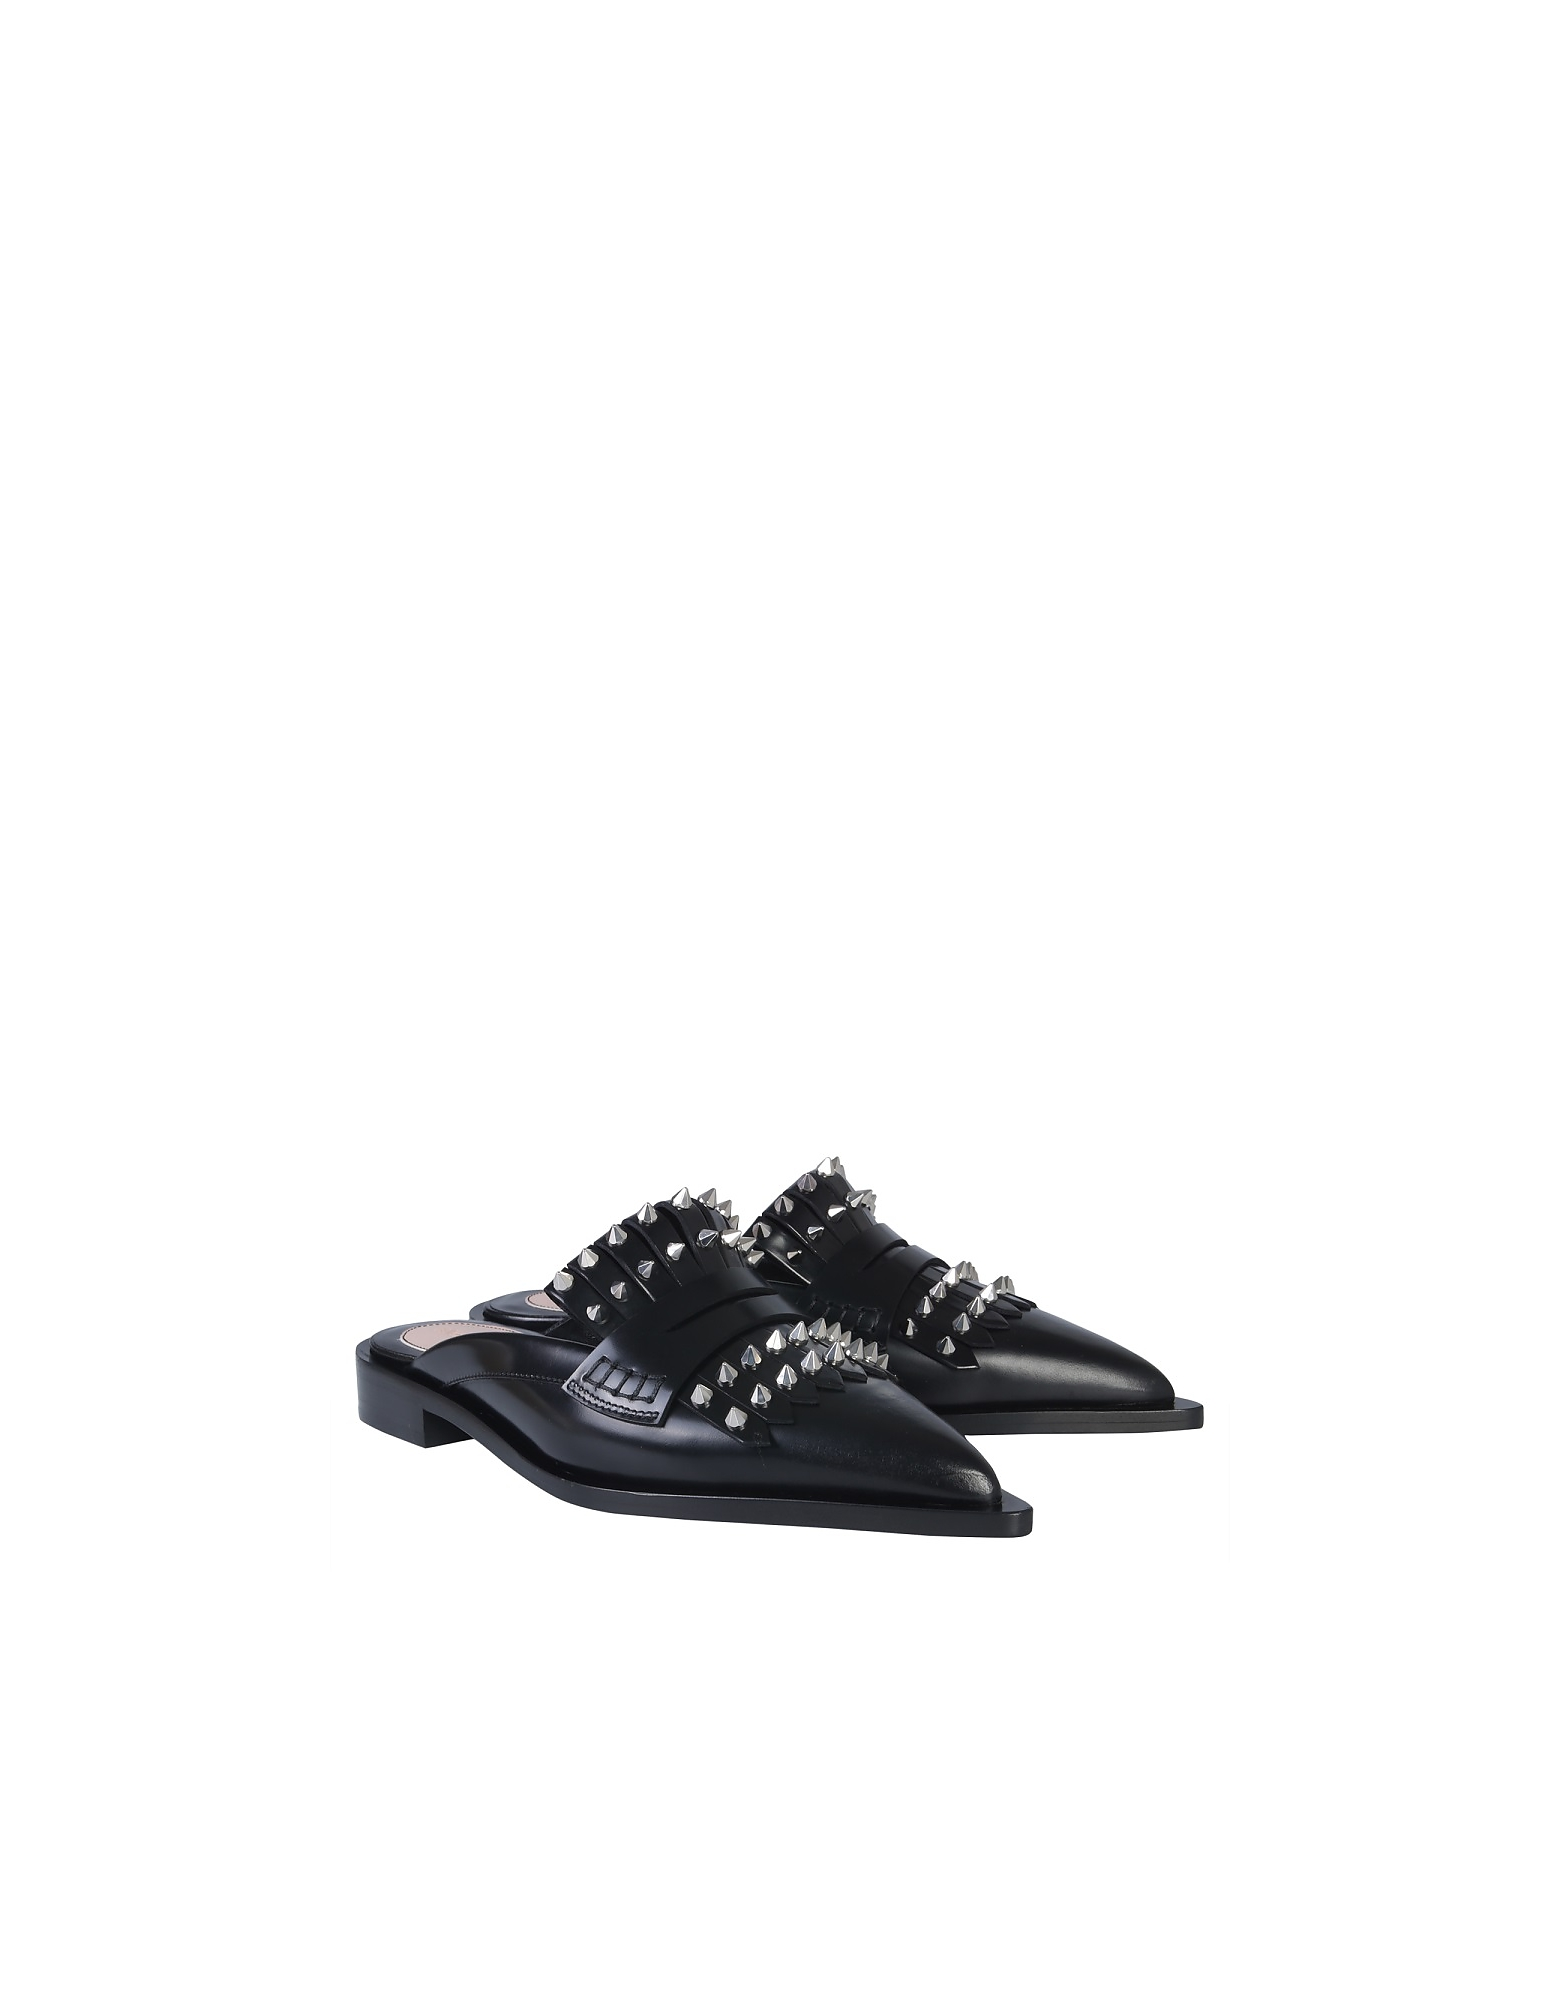 Alexander McQueen Designer Shoes, Black Leather Studded Mules